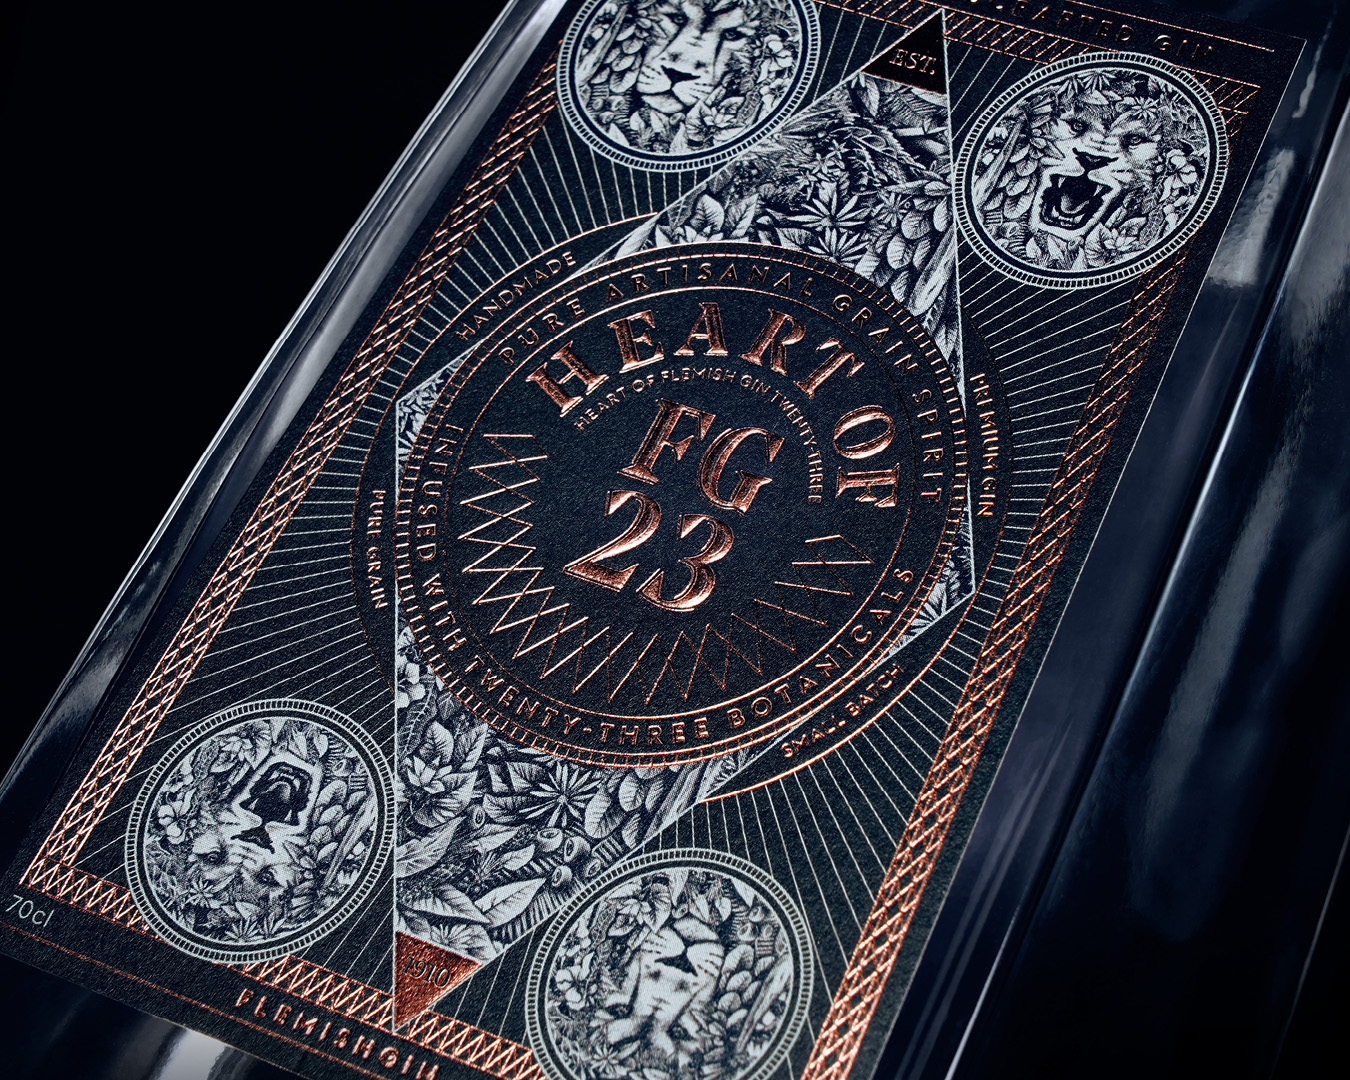 De Moor Flemish Gin 23 Craftsmanship Packaging by Sign Brussels